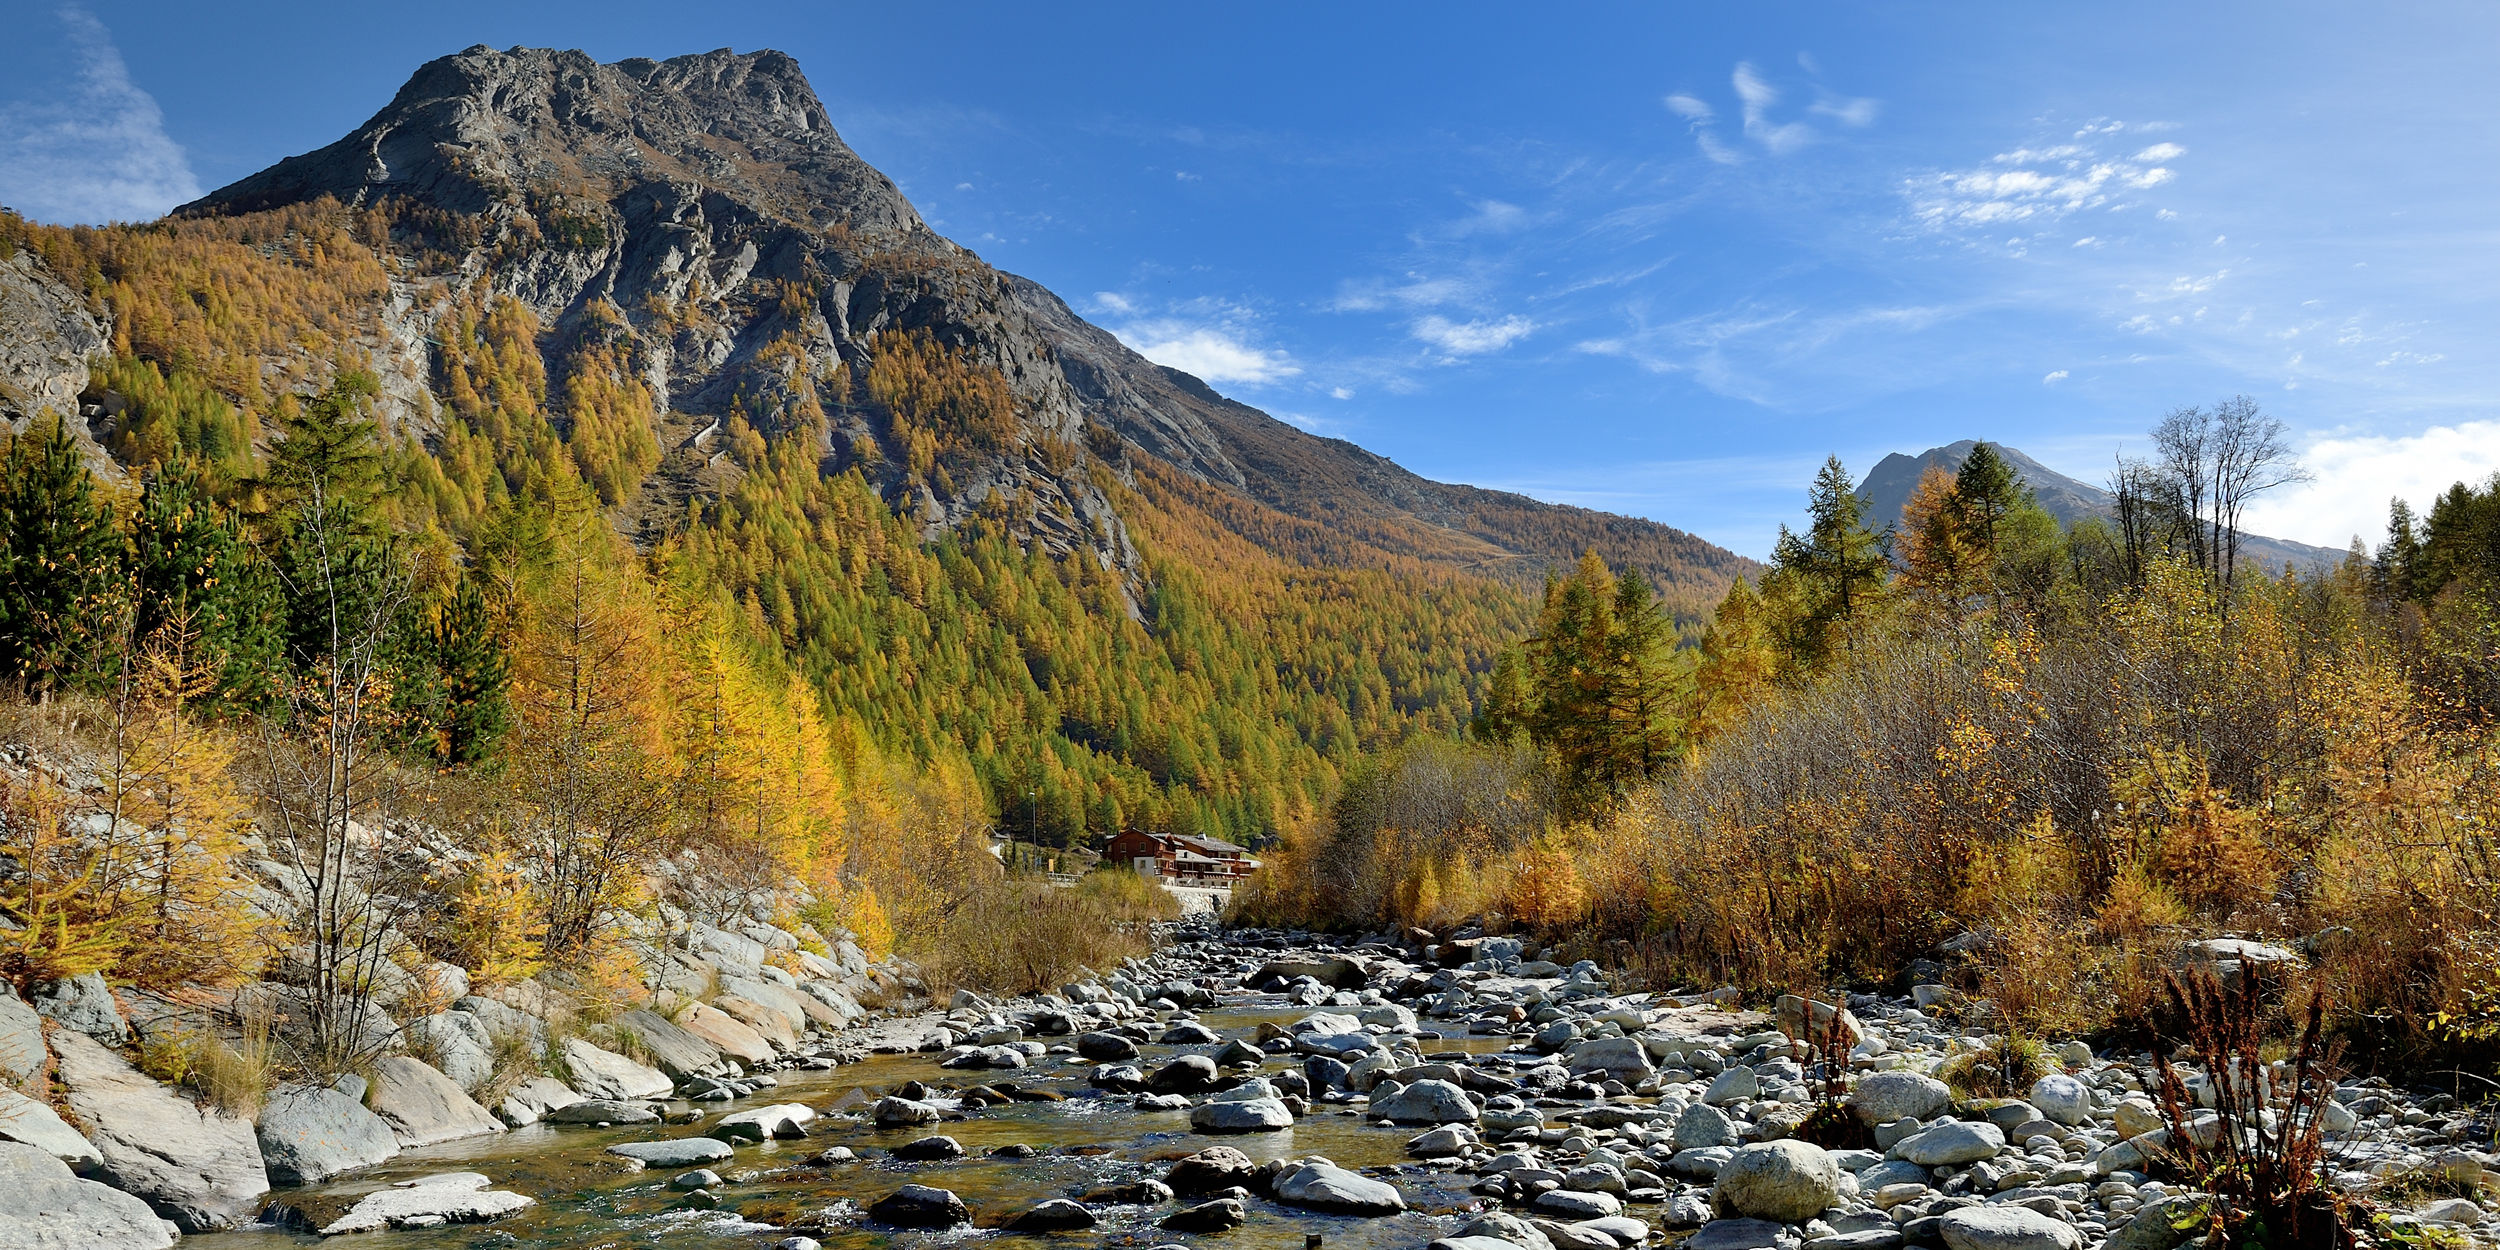 [Translate to English:] Herbst in der Freien Ferienrepublik Saas-Fee